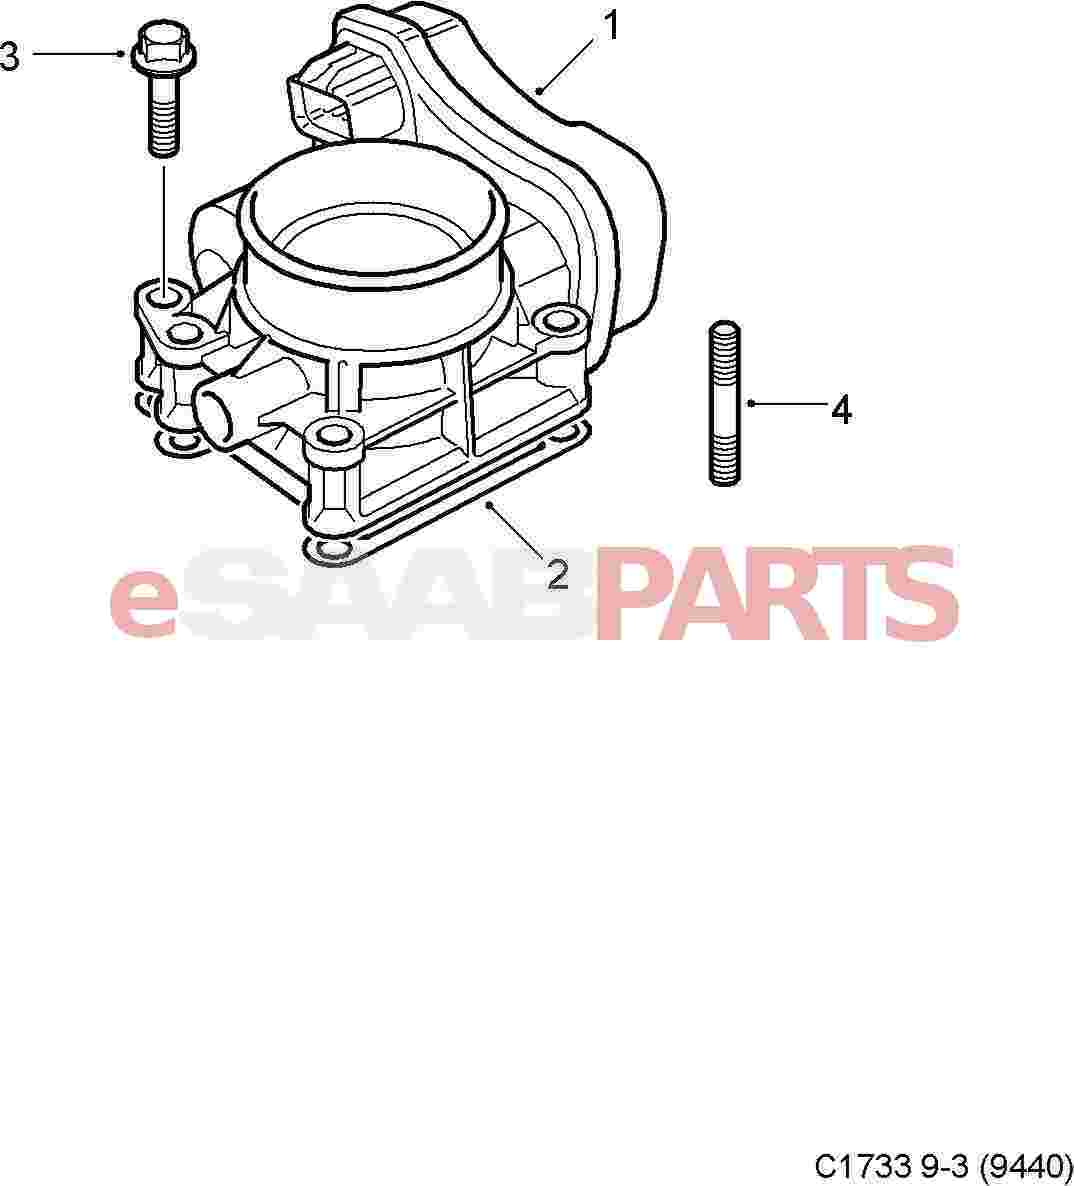 Saab 9 3 Suspension Parts Diagram • Wiring Diagram For Free